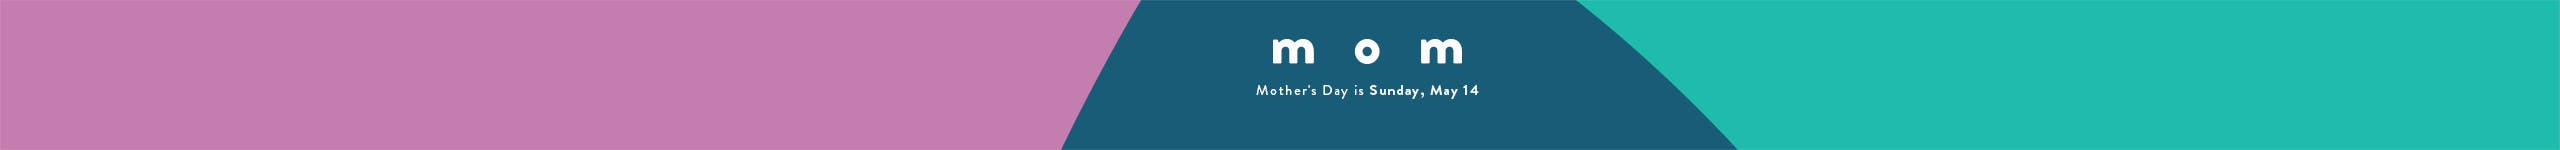 Mother's Day is Sunday, May 14.